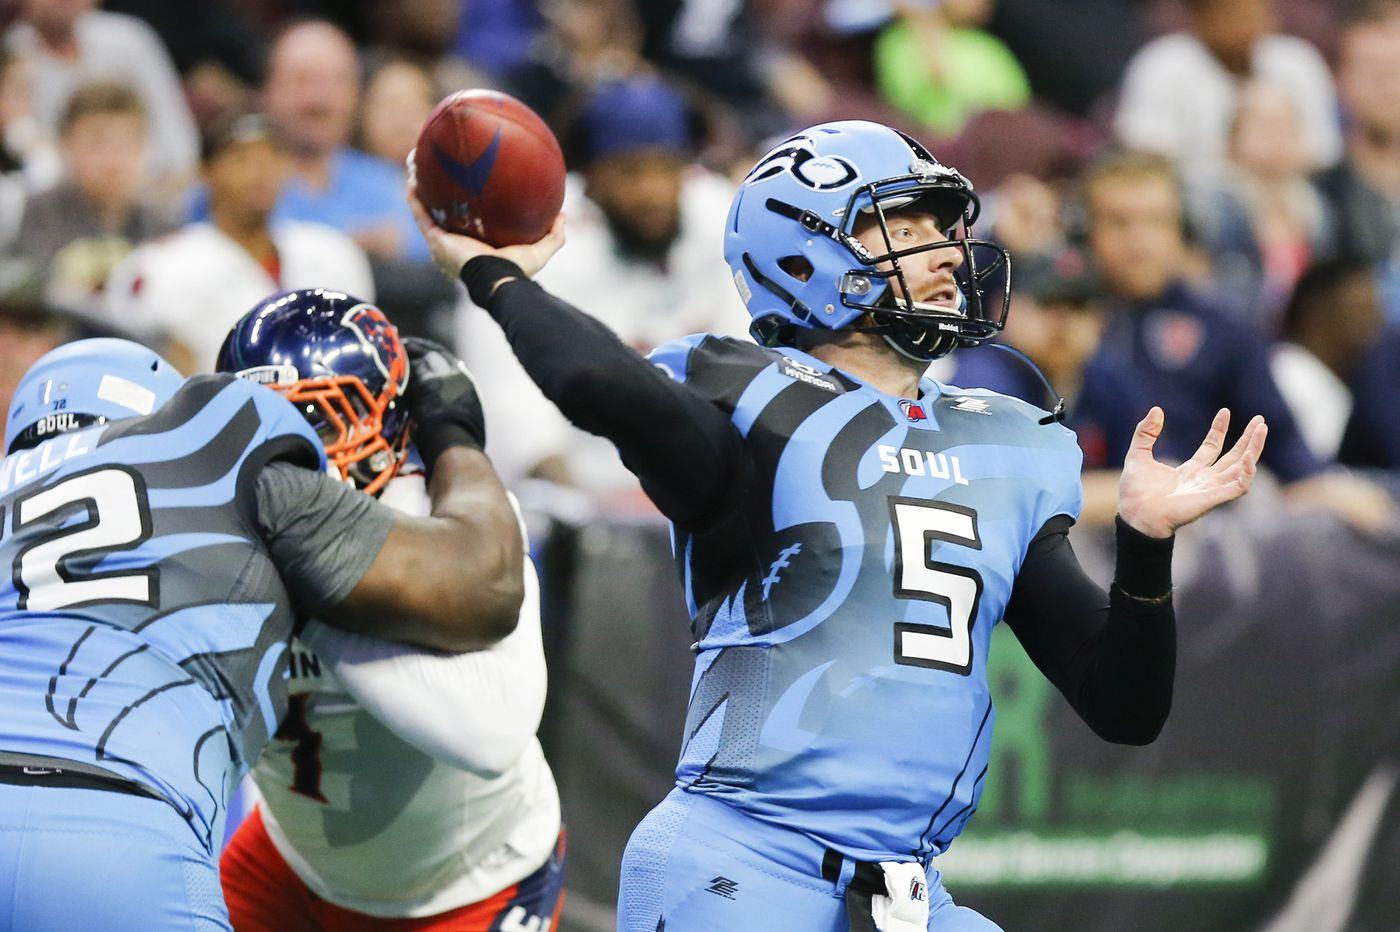 Soul cruise to victory over Atlantic City Blackjacks